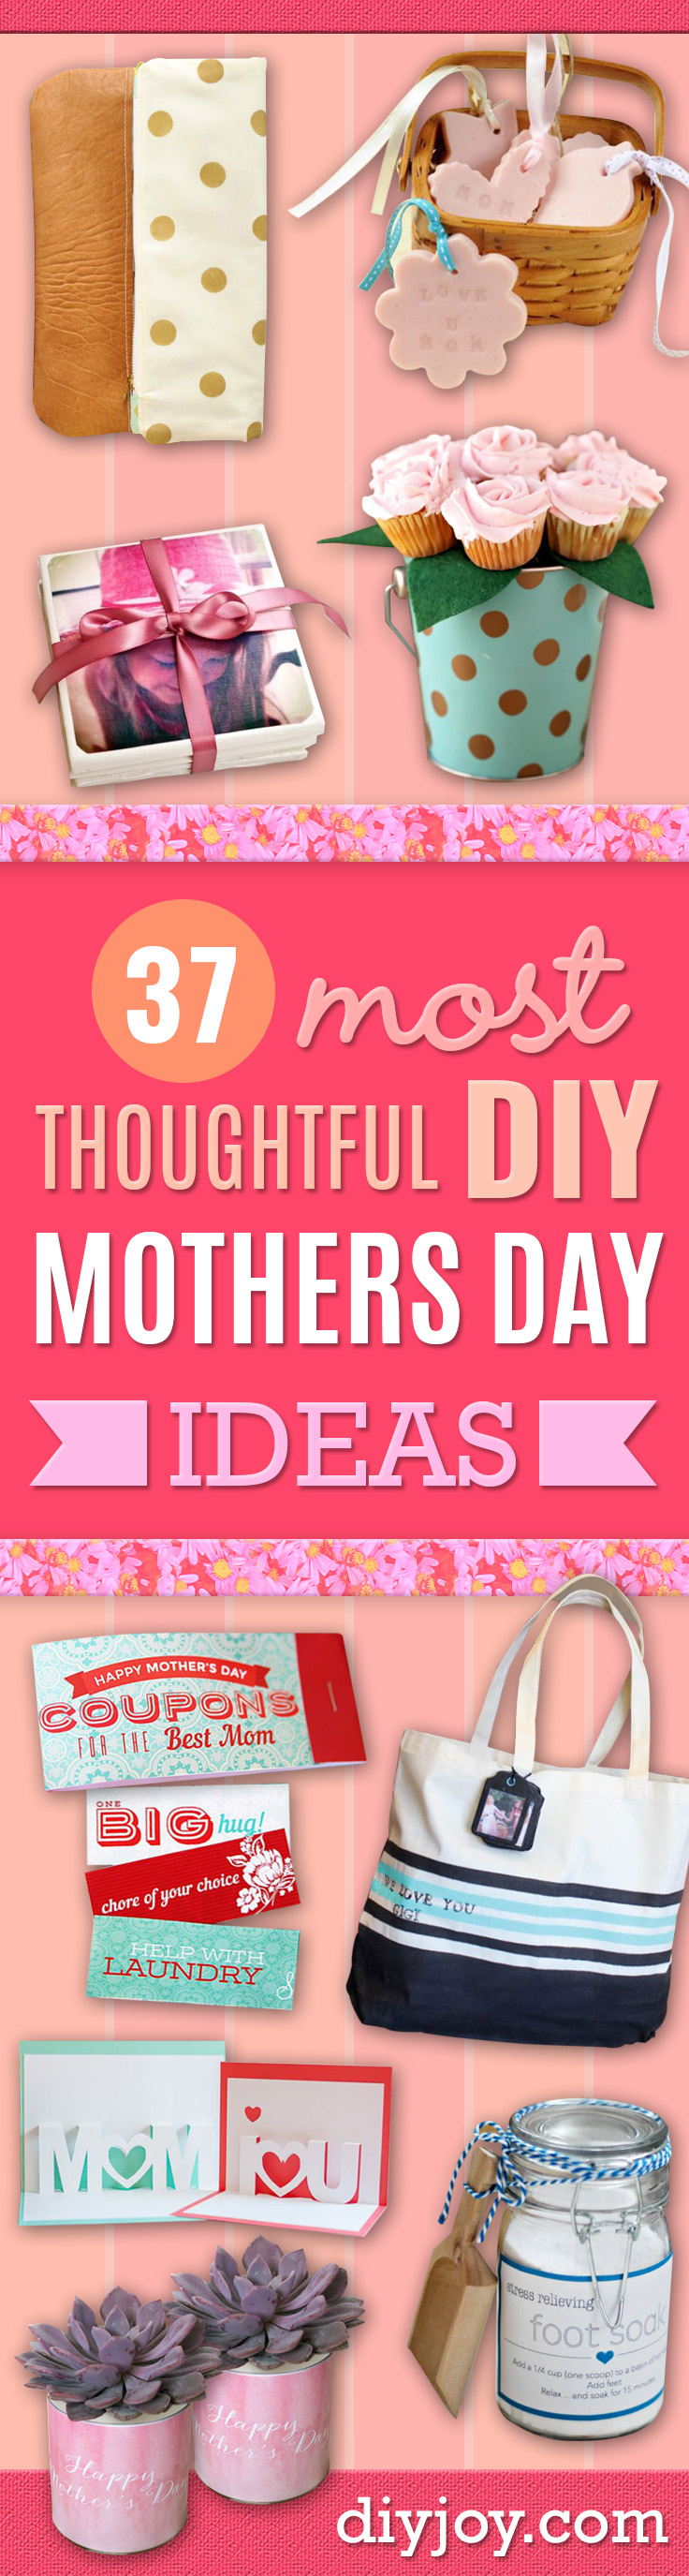 Best Mothers Day Ideas Easy And Cute Diy Projects To Make For Mom Cool